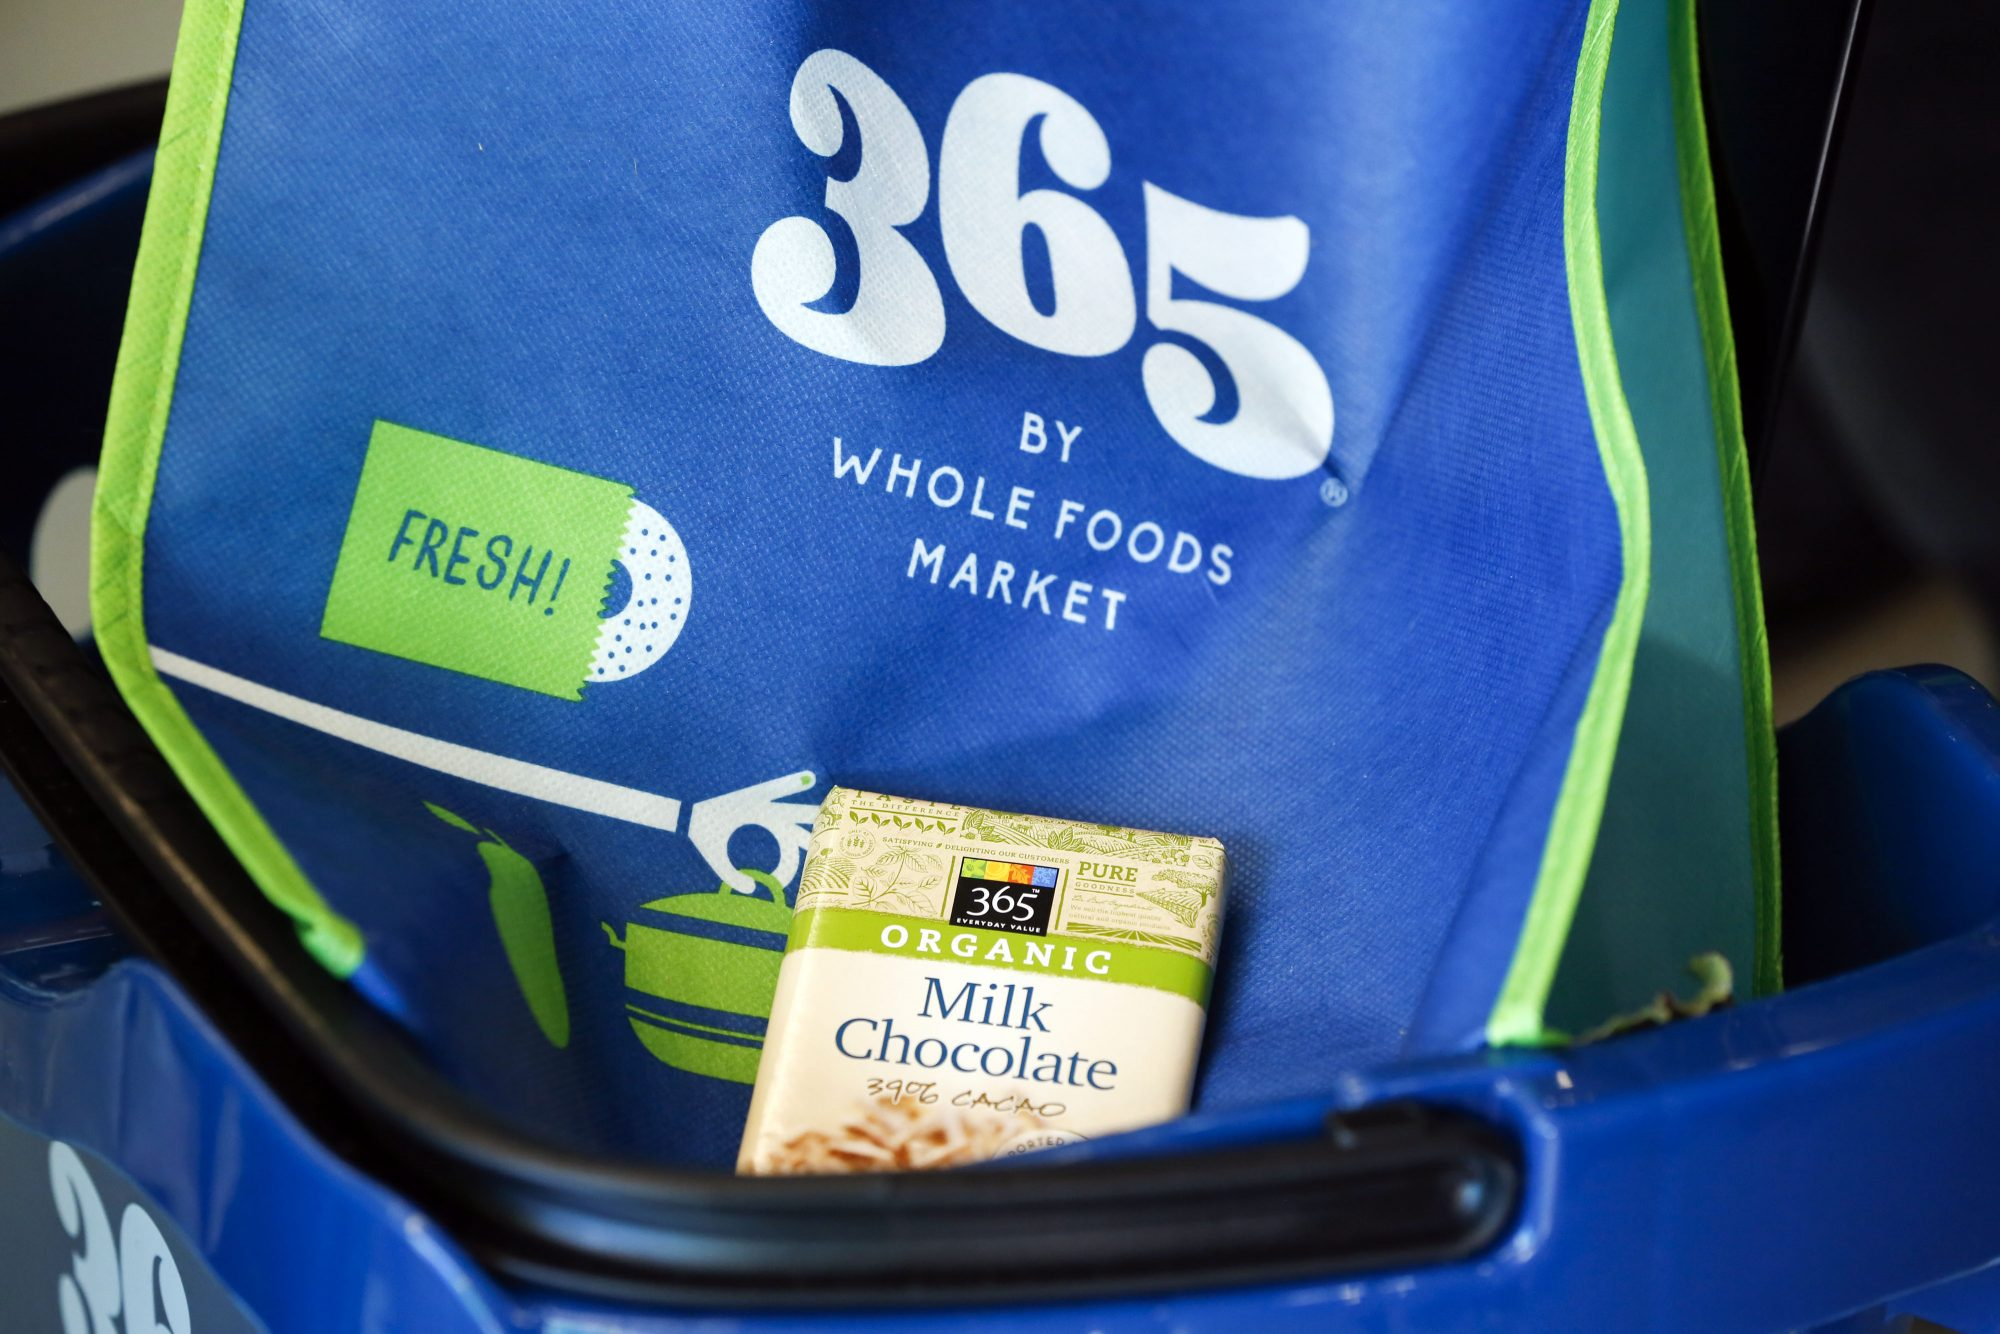 Grand Opening Of The New 365 By Whole Foods Inc. Store